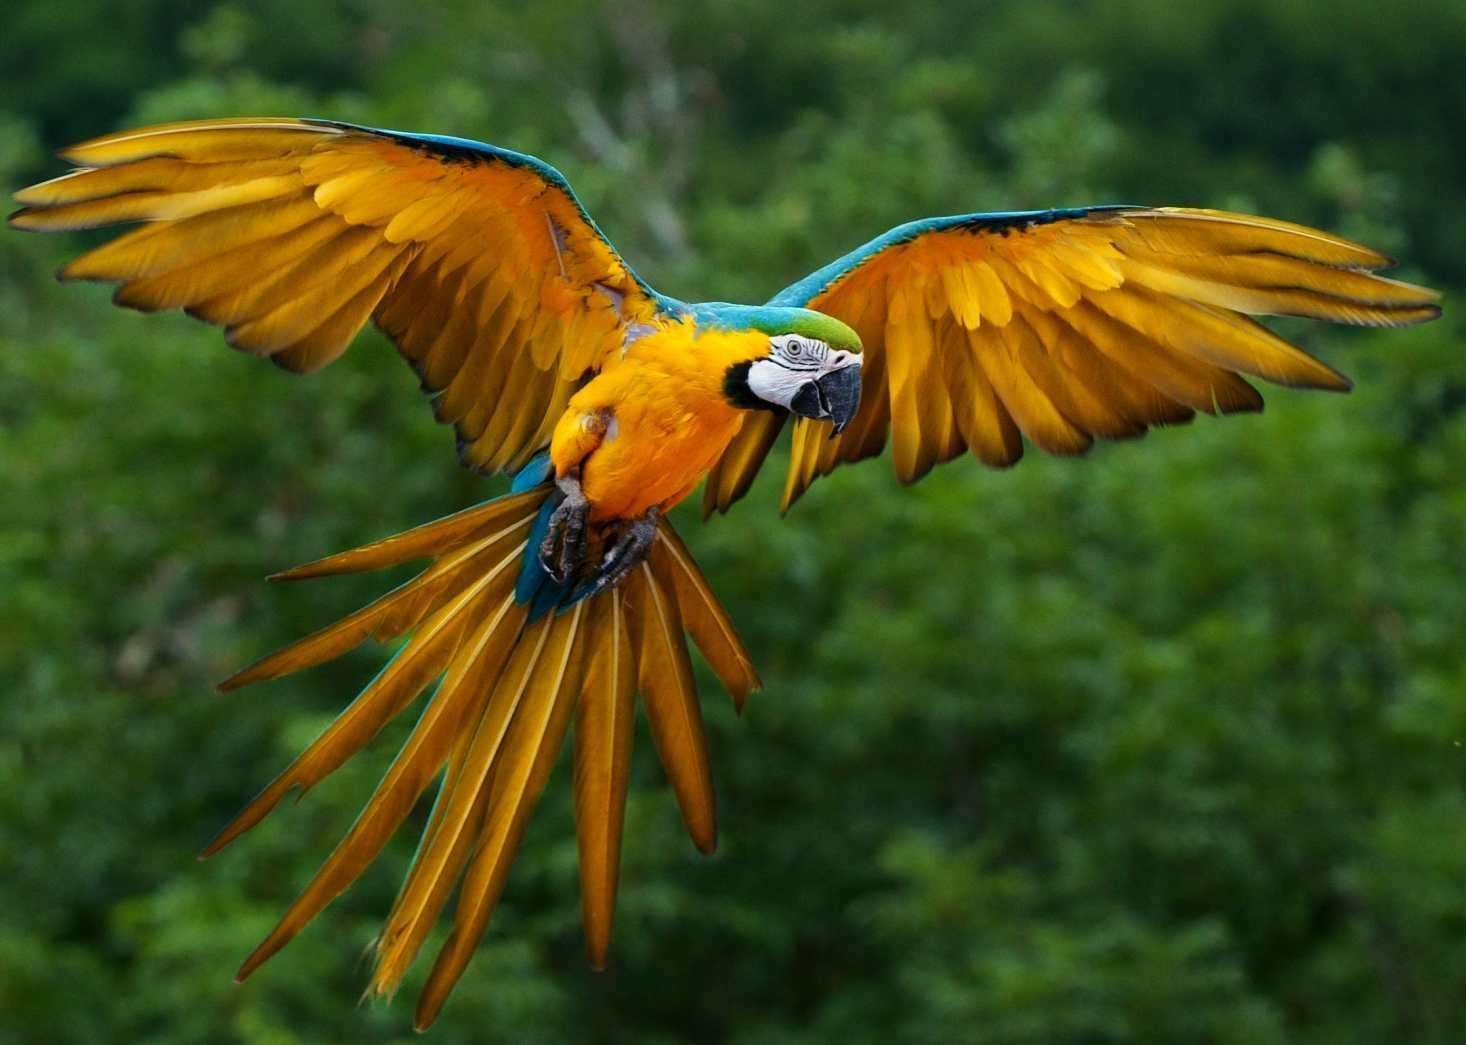 Amazon Rainforest Birds The endangered Blue and Yellow